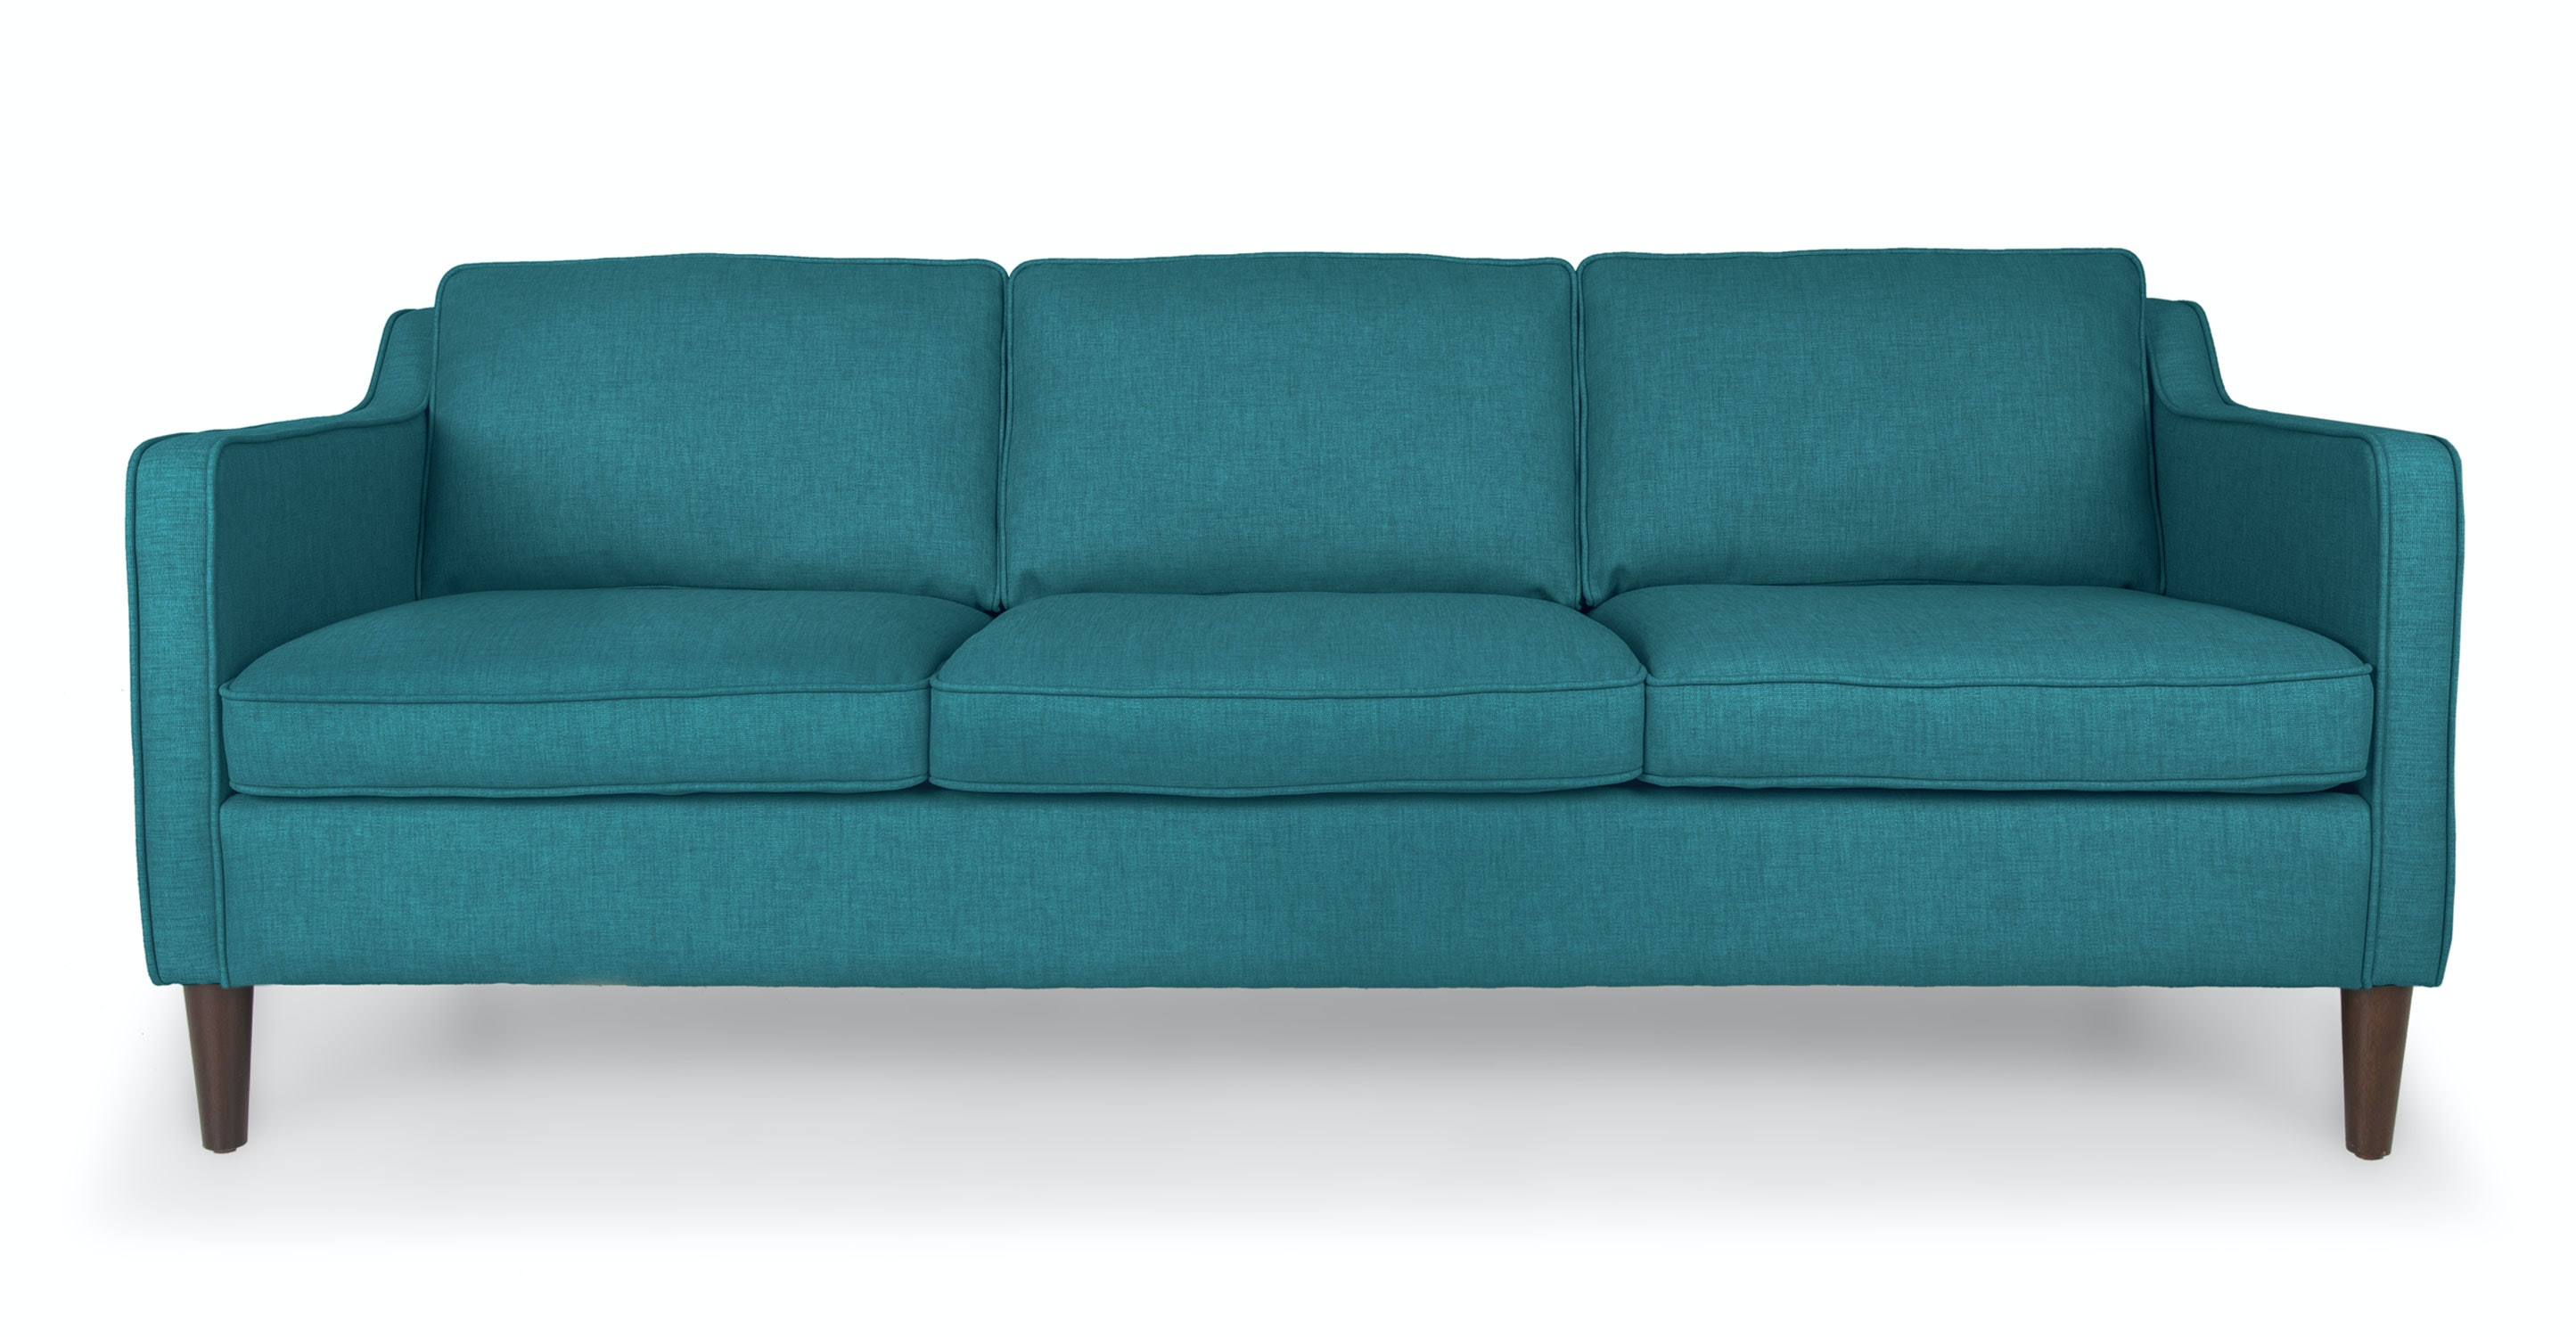 Cherie Ocean Teal Sofa Sofas Article Modern Mid Century And Scandinavian Furniture